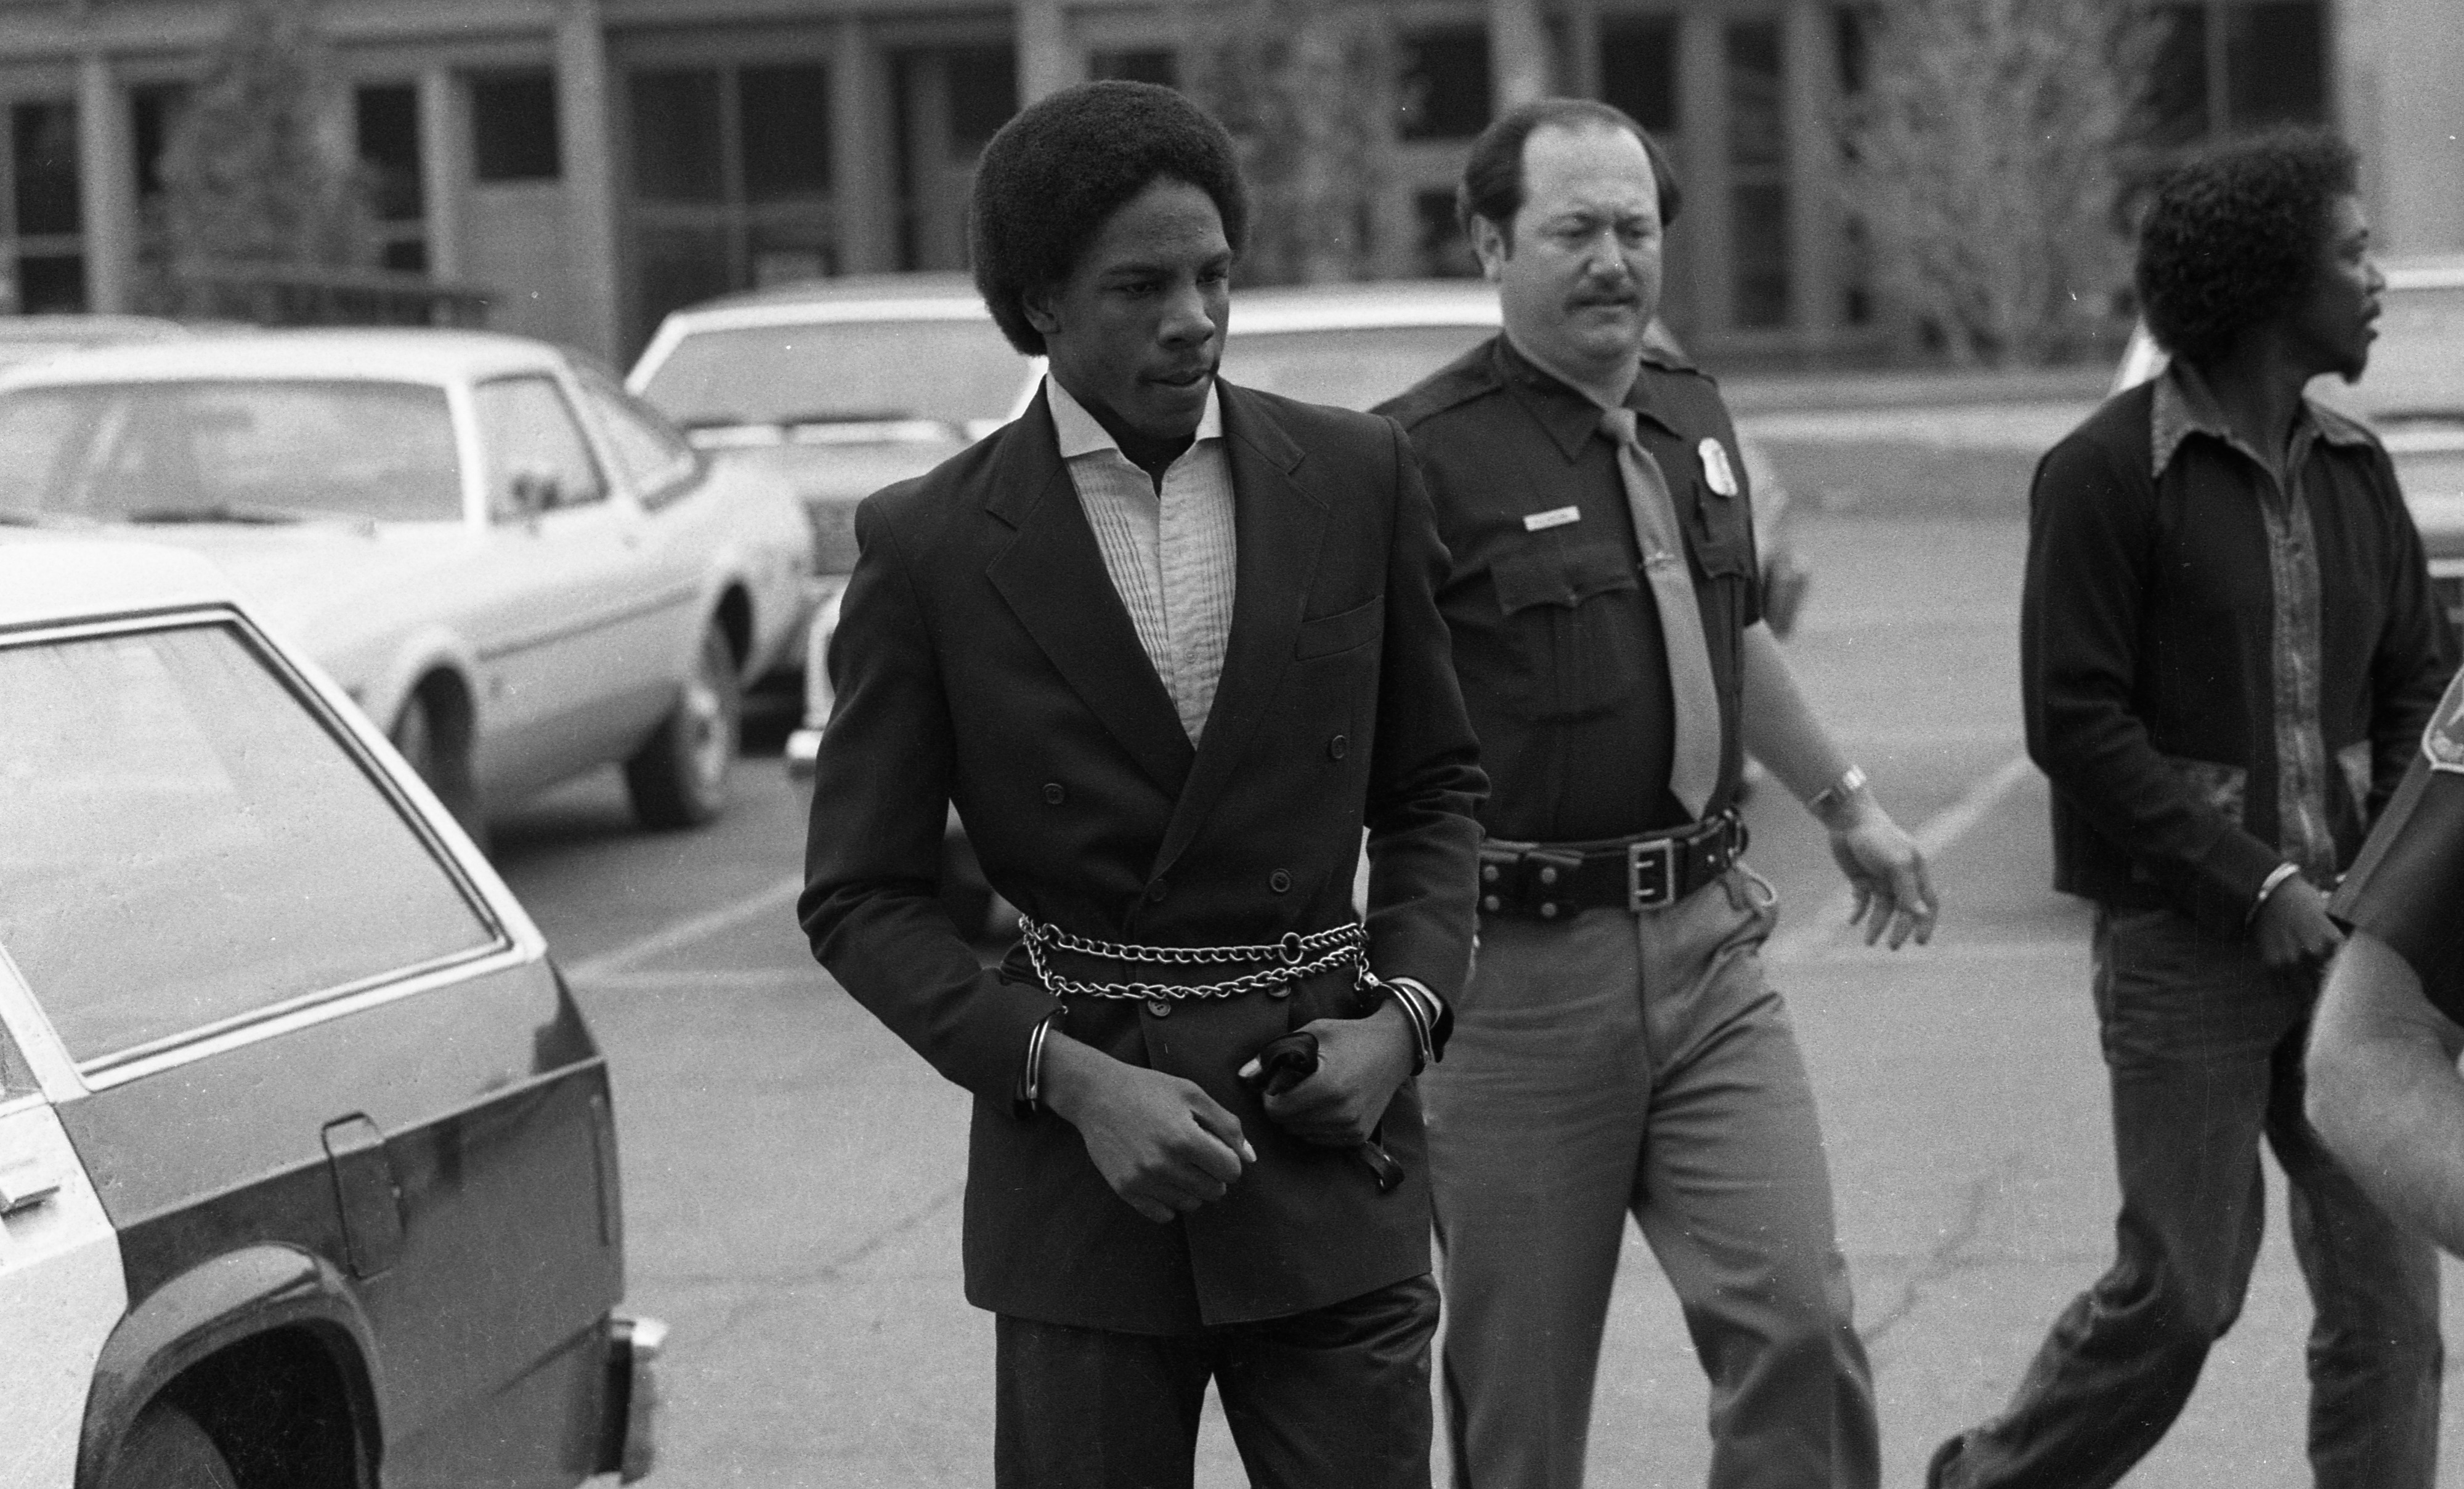 Ricardo Hart, Suspect in Nancy Faber Murder, Escorted to Court, June 1984 image